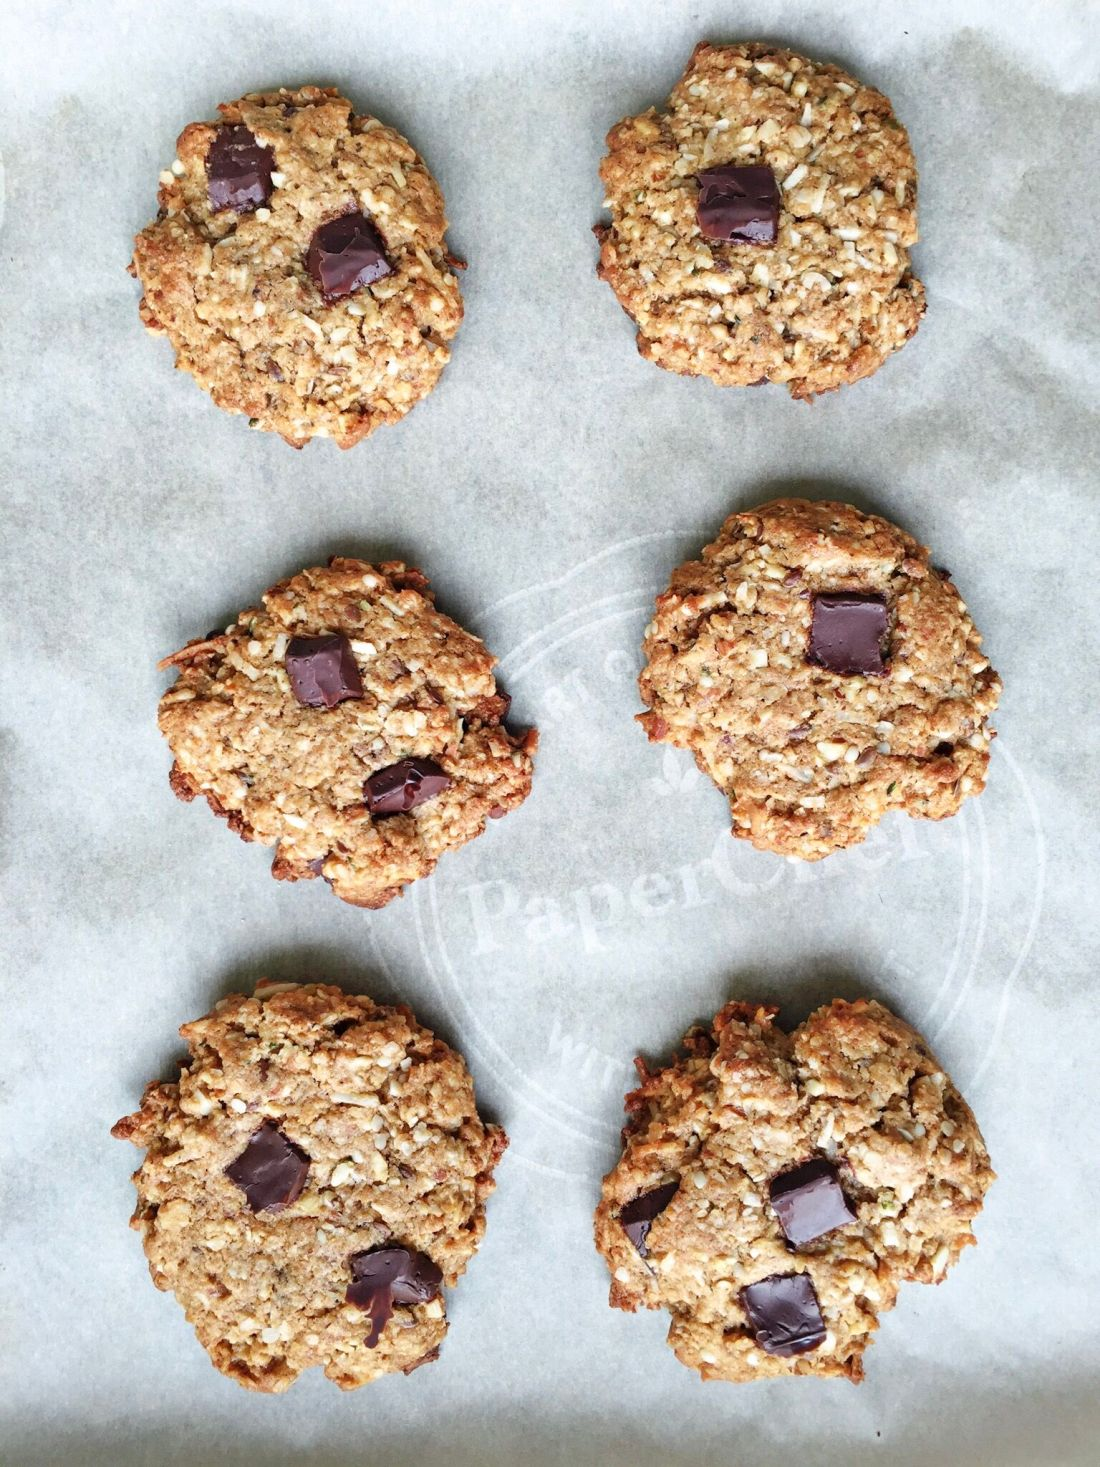 Boobie Cookies ... aka Lactation cookies to help boost breast milk production